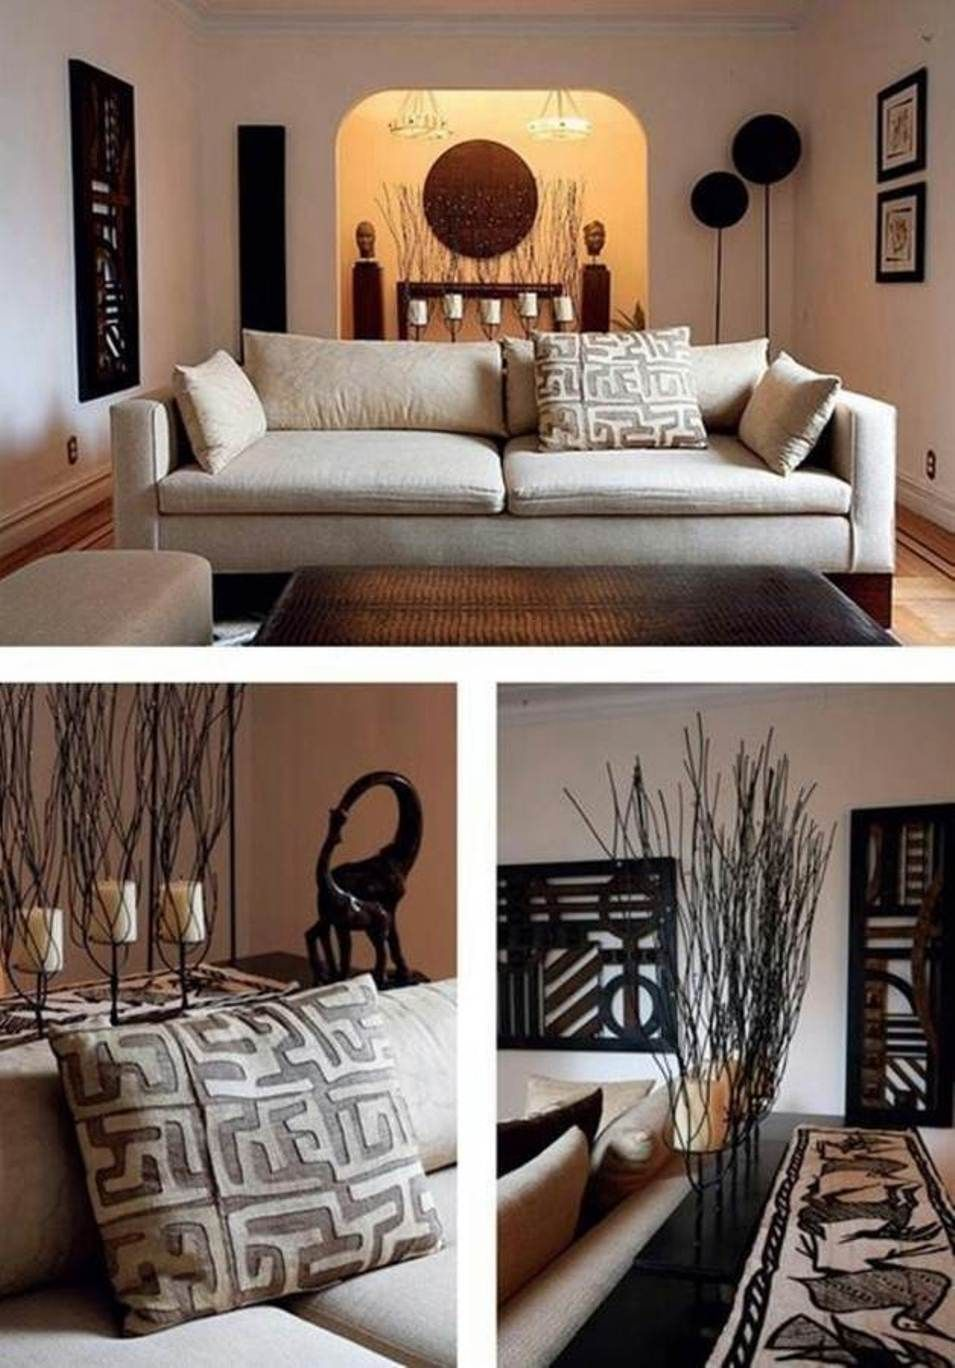 African Style Living Room Pin By Ale Creatini On African Chic Style In 2019 Home Decor